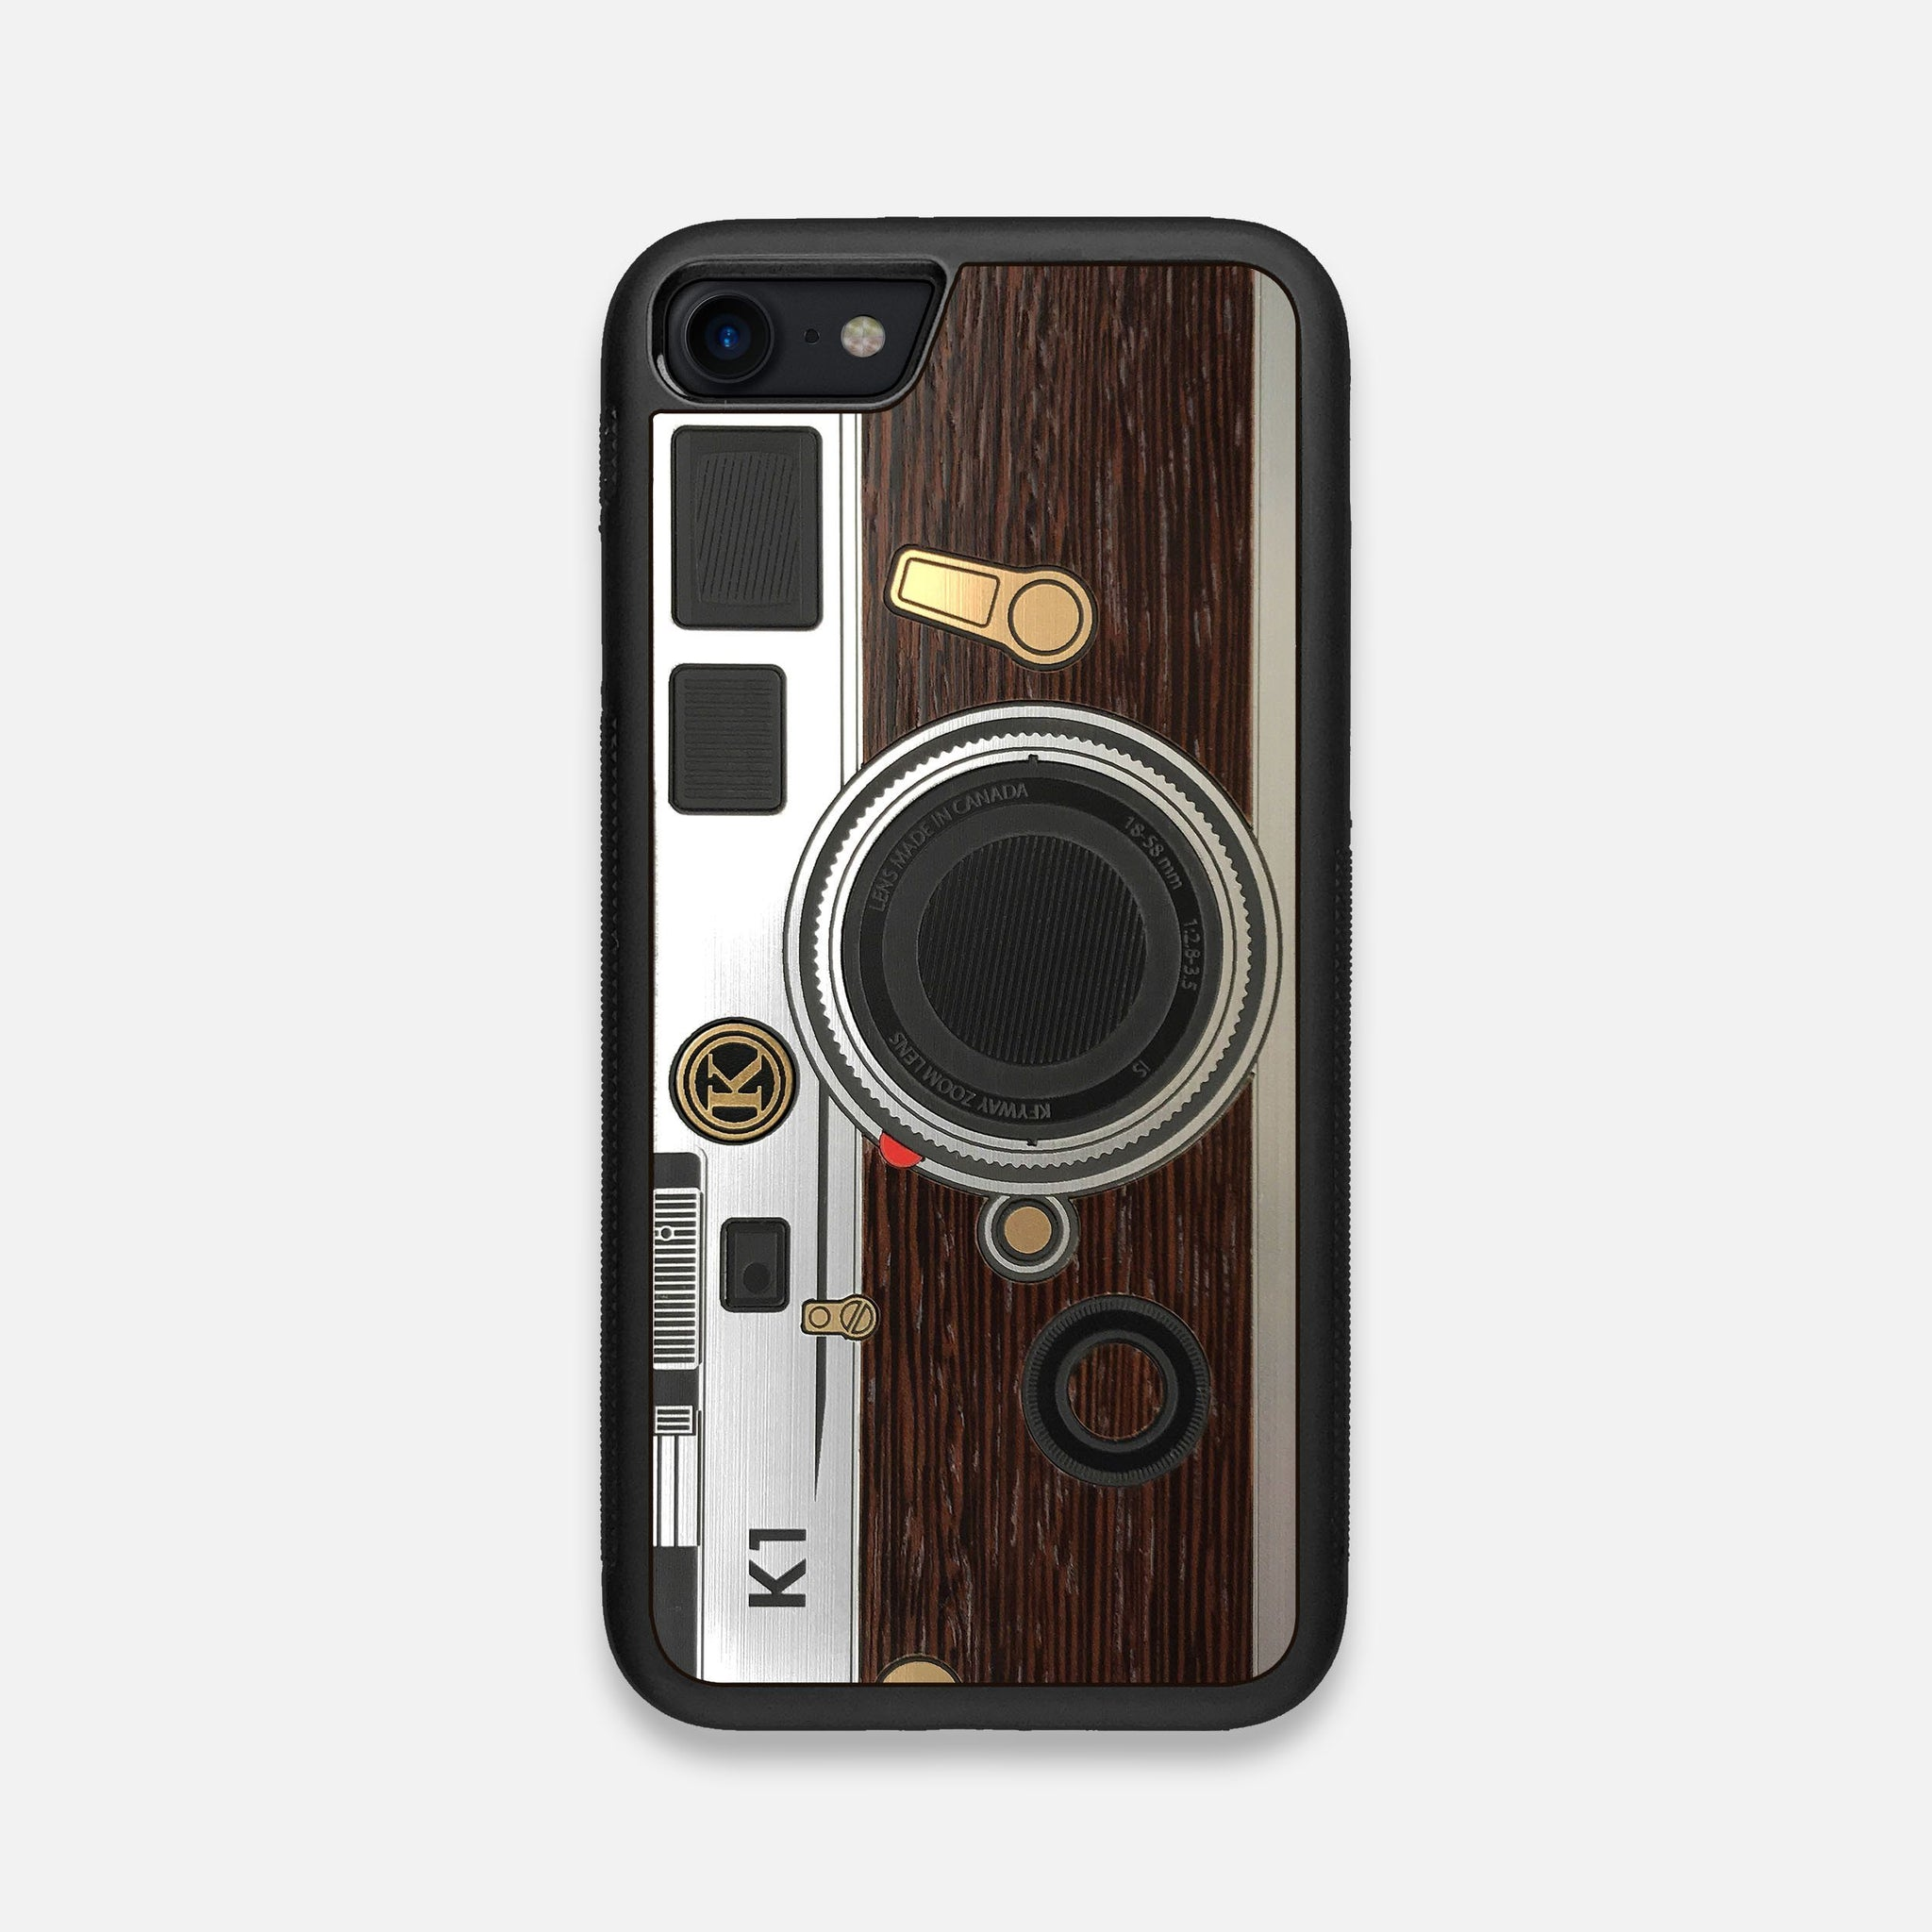 Front view of the classic Camera, silver metallic and wood iPhone 7/8 Case by Keyway Designs